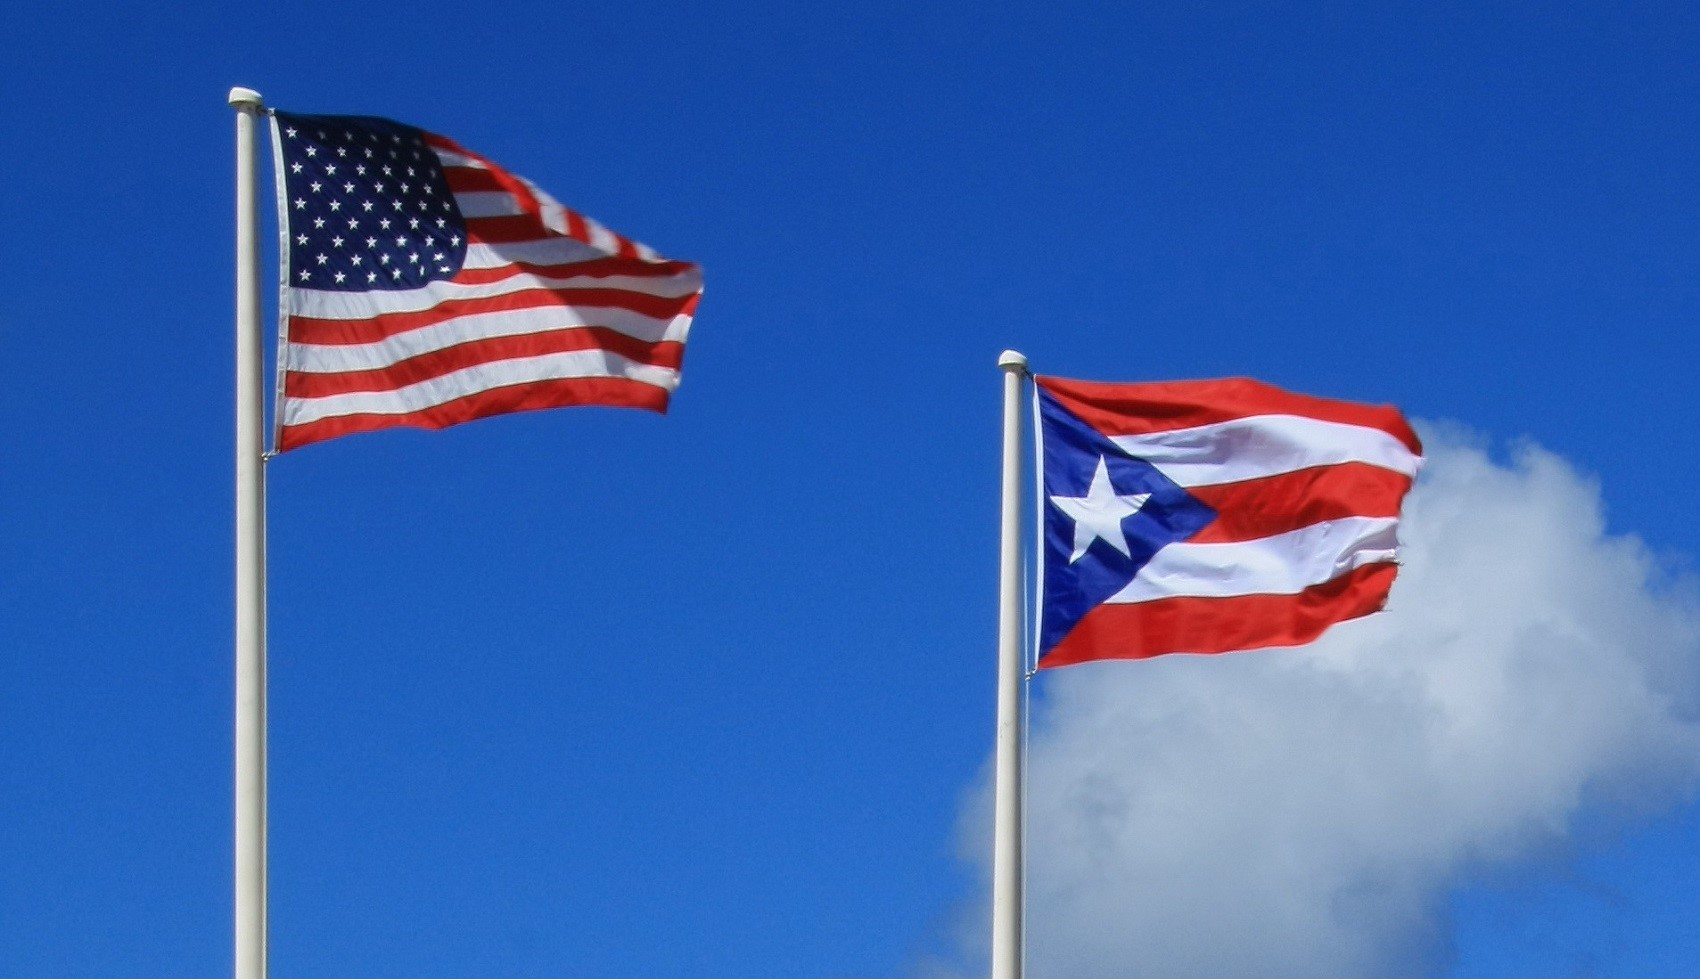 Puerto Rico and USA at spillwords.com